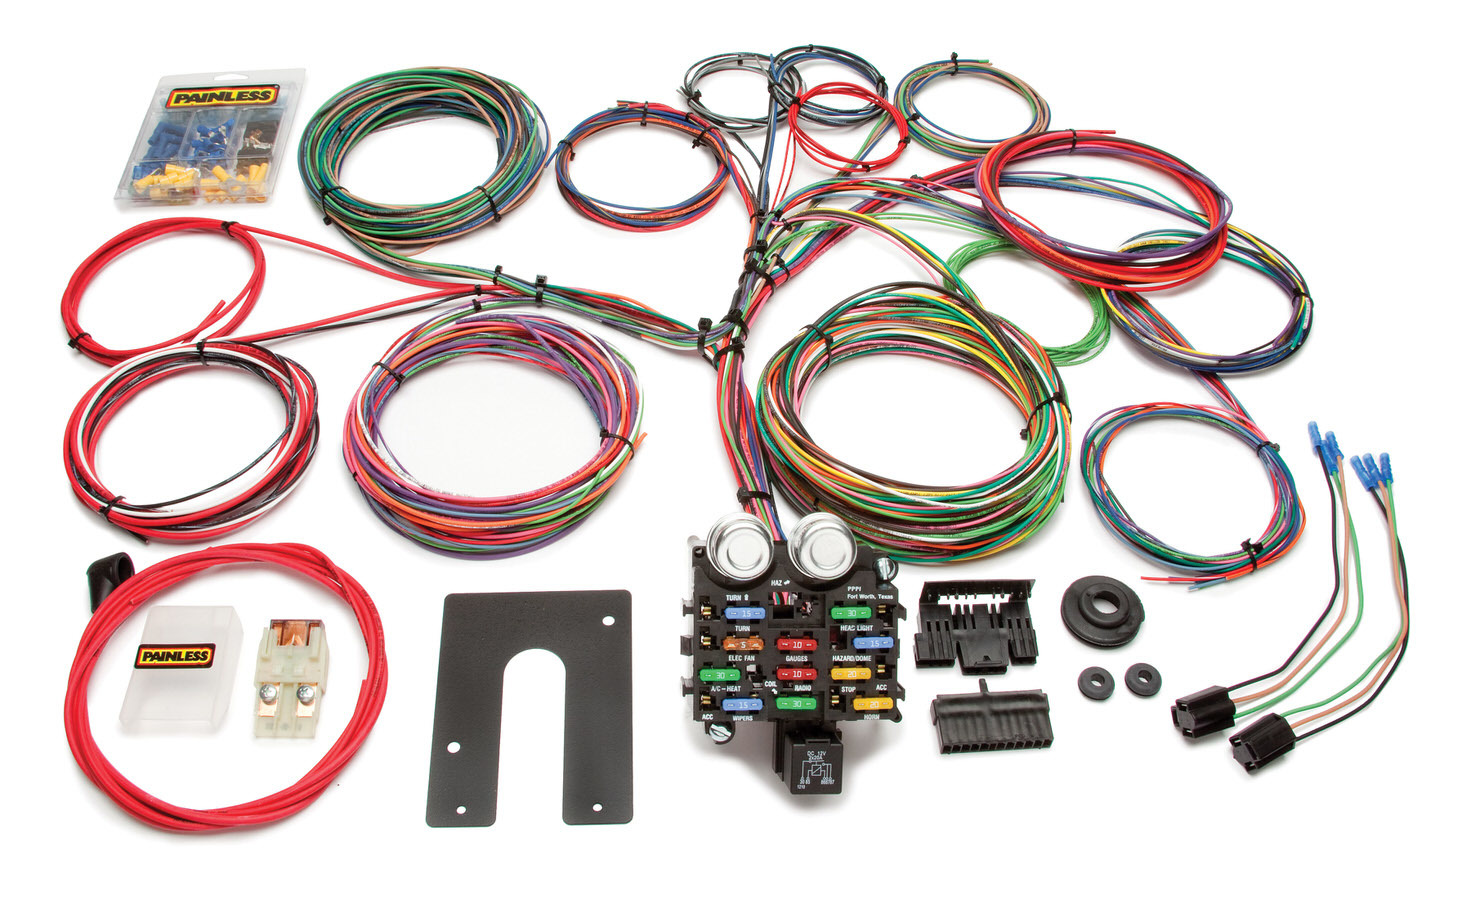 Painless Wiring 10104 Car Wiring Harness, Classic Customizable Pickup, 21 Circuit, Complete, Universal, Kit